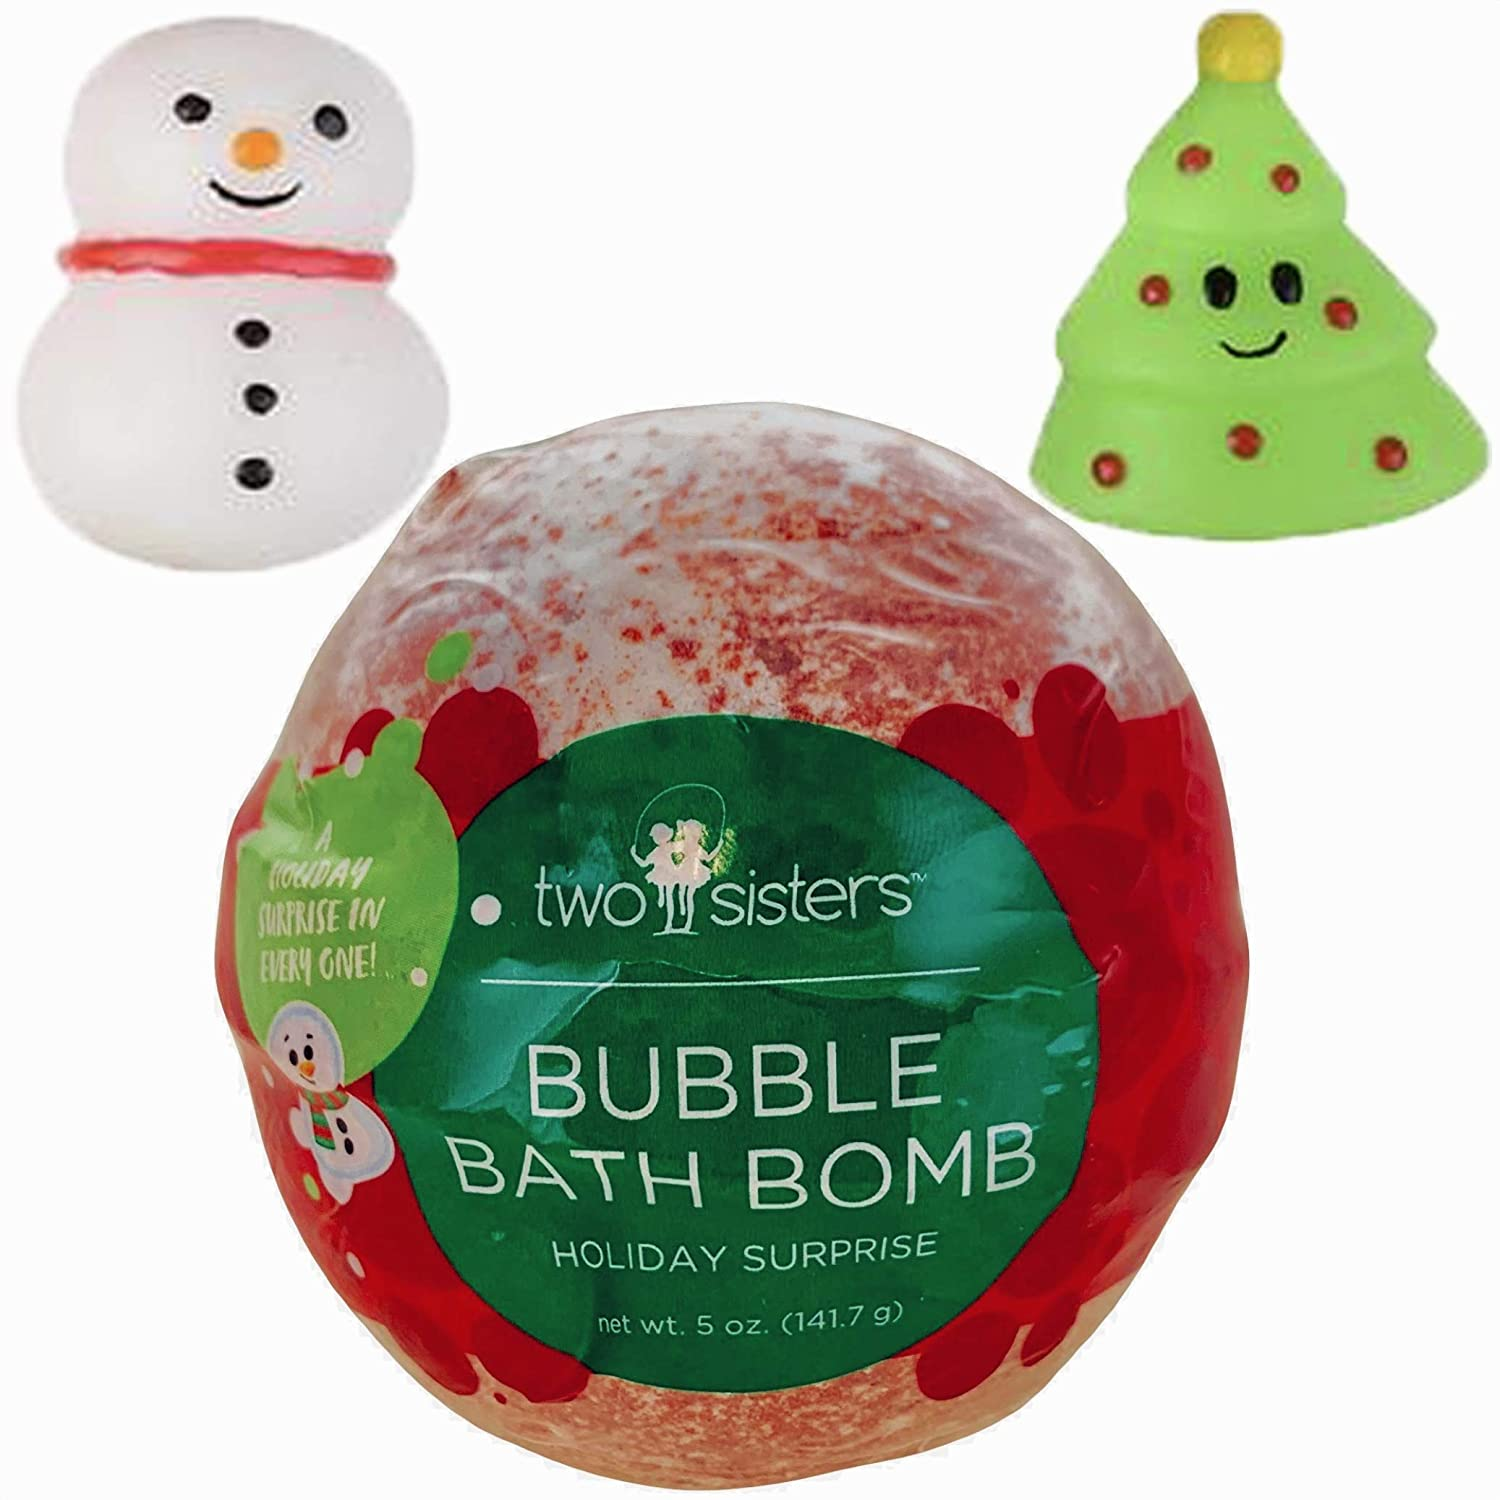 Christmas Bubble Bath Bomb for Kids with Surprise Holiday Squishy Toy Inside by Two Sisters. Large 99% Natural Wrapped Fizzy. Moisturizes Dry Sensitive Skin. Releases Color, Scent, and Bubbles.